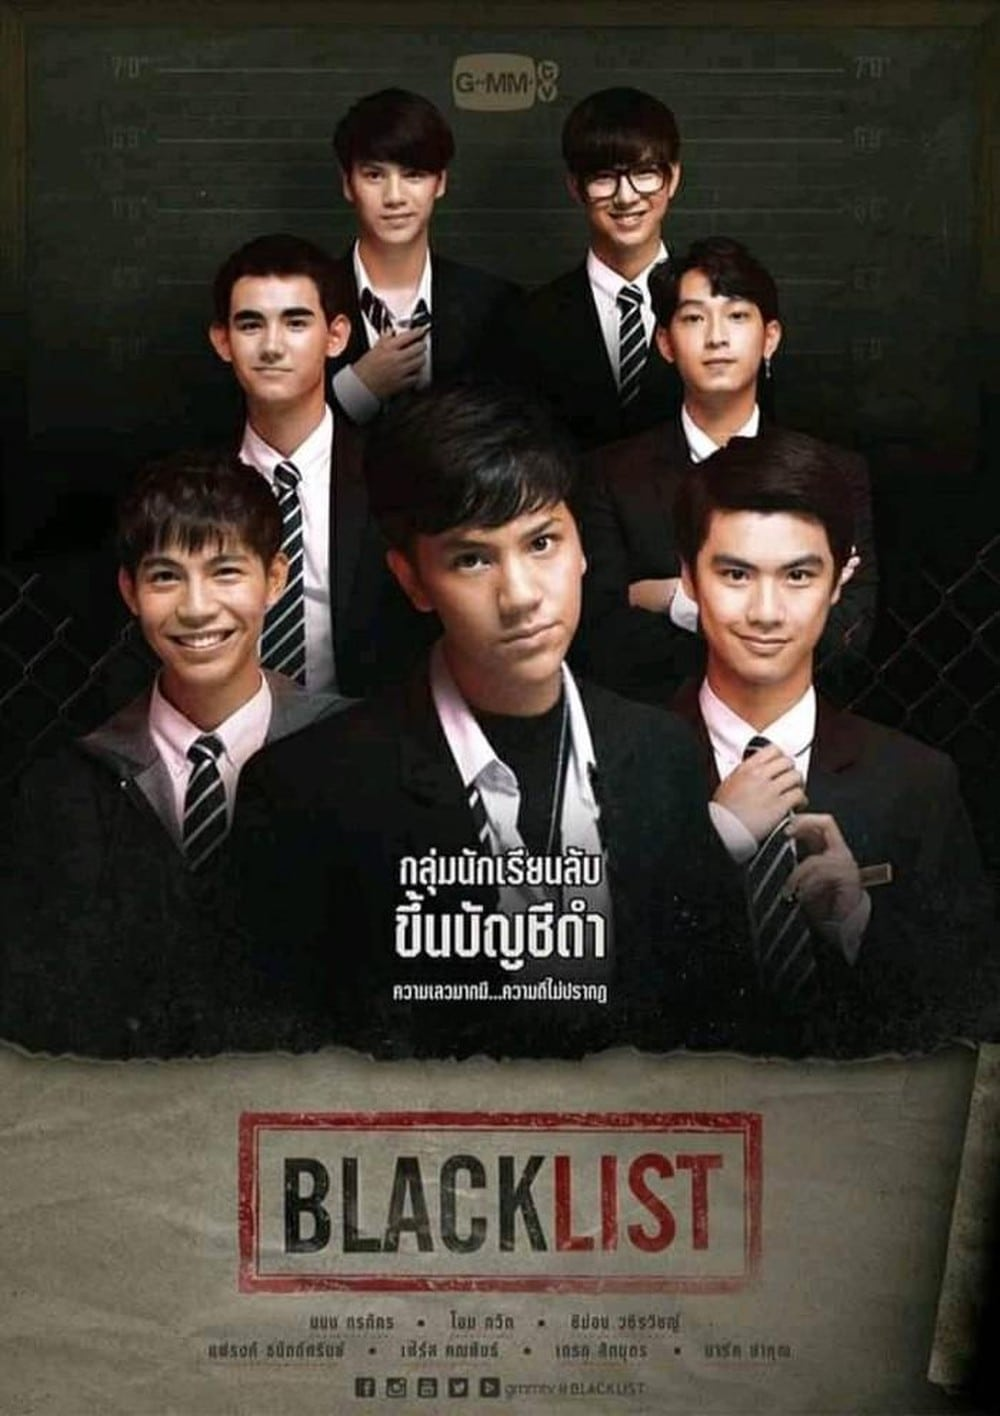 BLACKLIST Secret Students (2019)